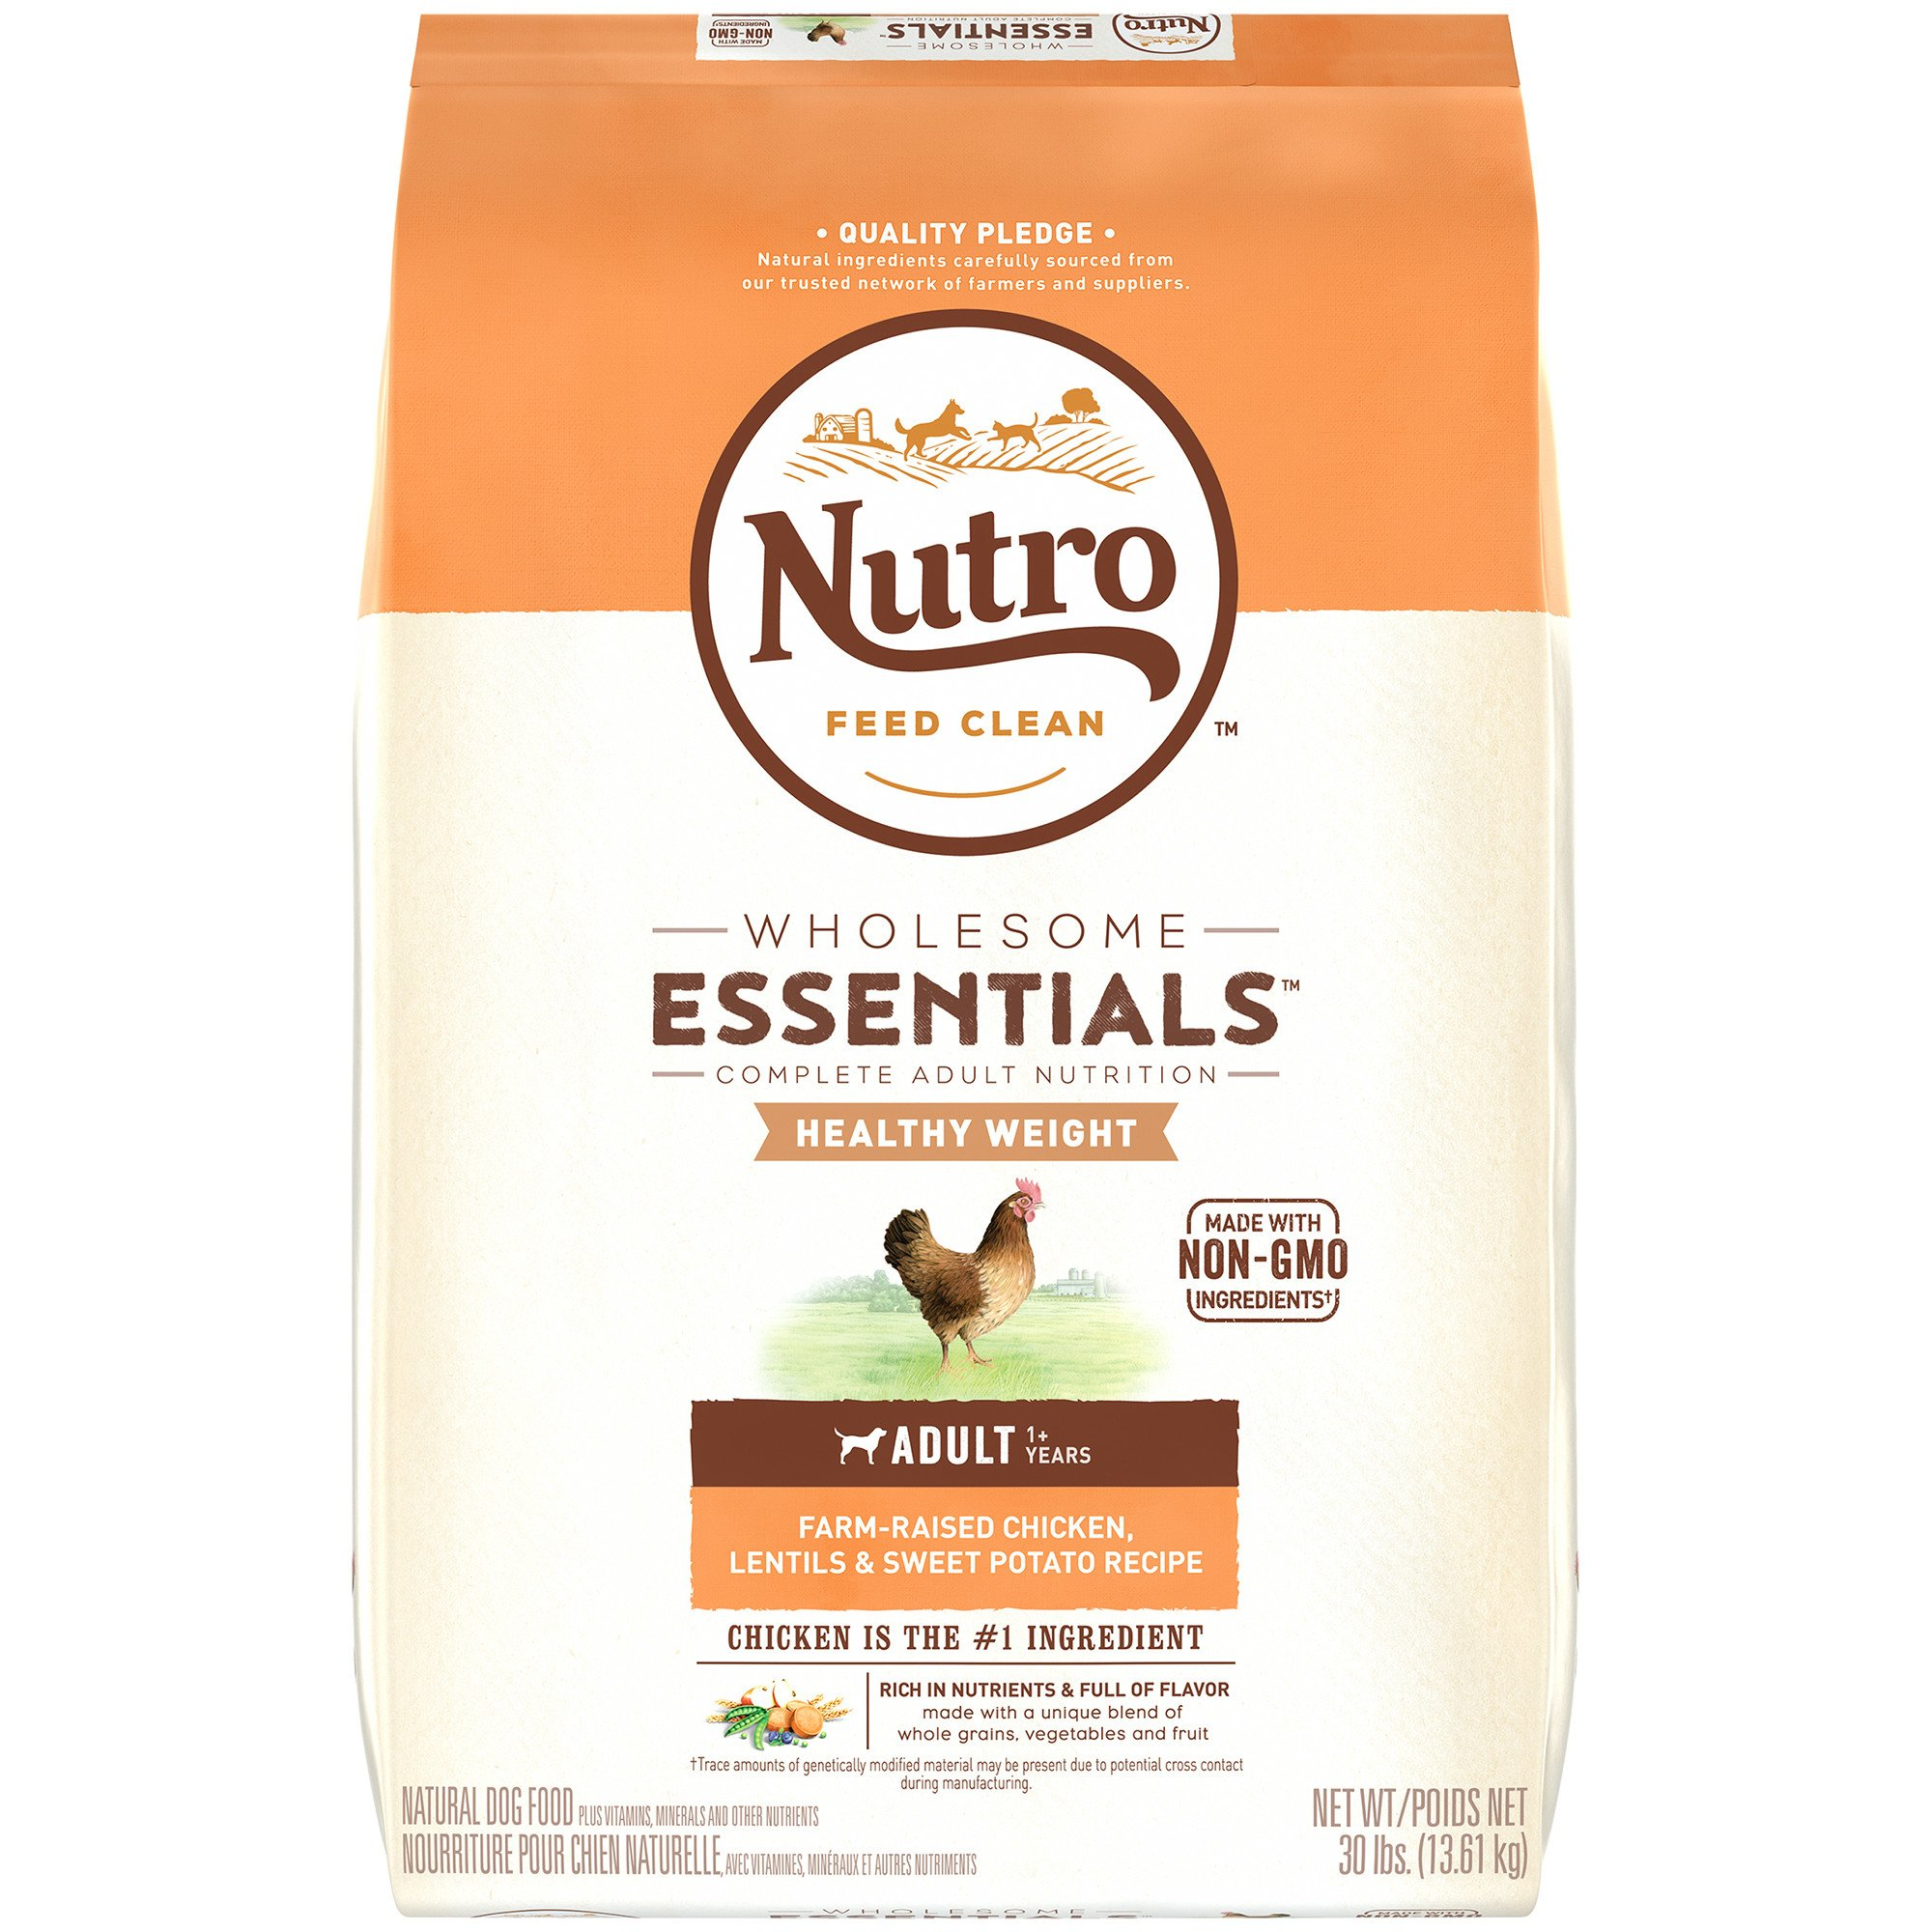 Nutro Wholesome Essentials Healthy Weight Farm-Raised Chicken, Lentils & Sweet Potato Recipe Dry Adult Dog Food, 30 lbs. Bag